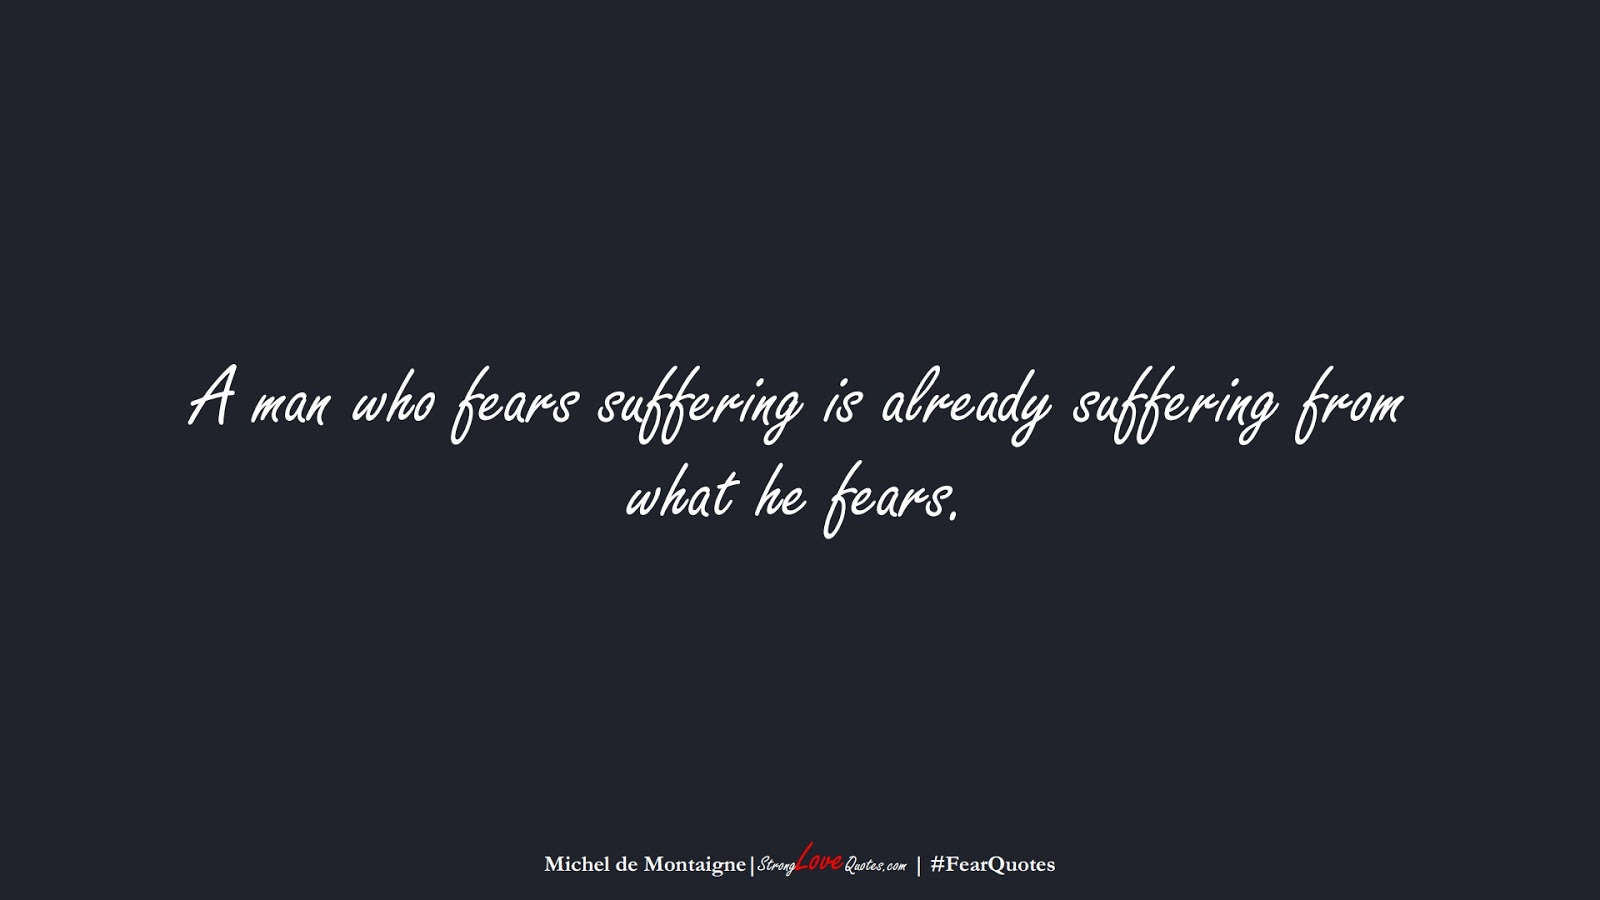 A man who fears suffering is already suffering from what he fears. (Michel de Montaigne);  #FearQuotes